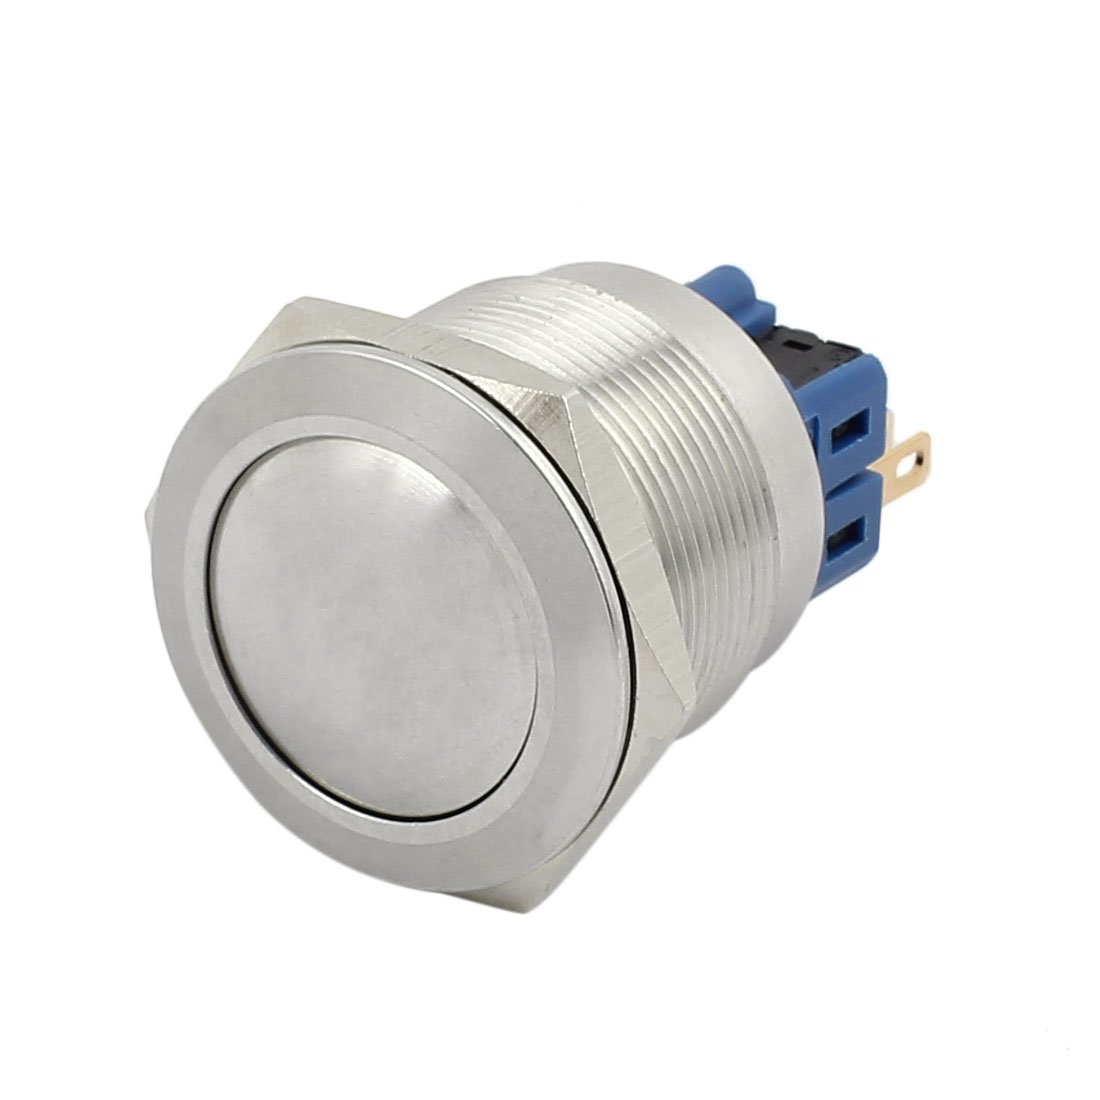 uxcell Press Switch 22mm 0.87' Mounting Thread Flat Round 1NO 1NC DPST Momentary Stainless Steel Metal Waterproof Push Button Switch UL Recognized a17021400ux1066